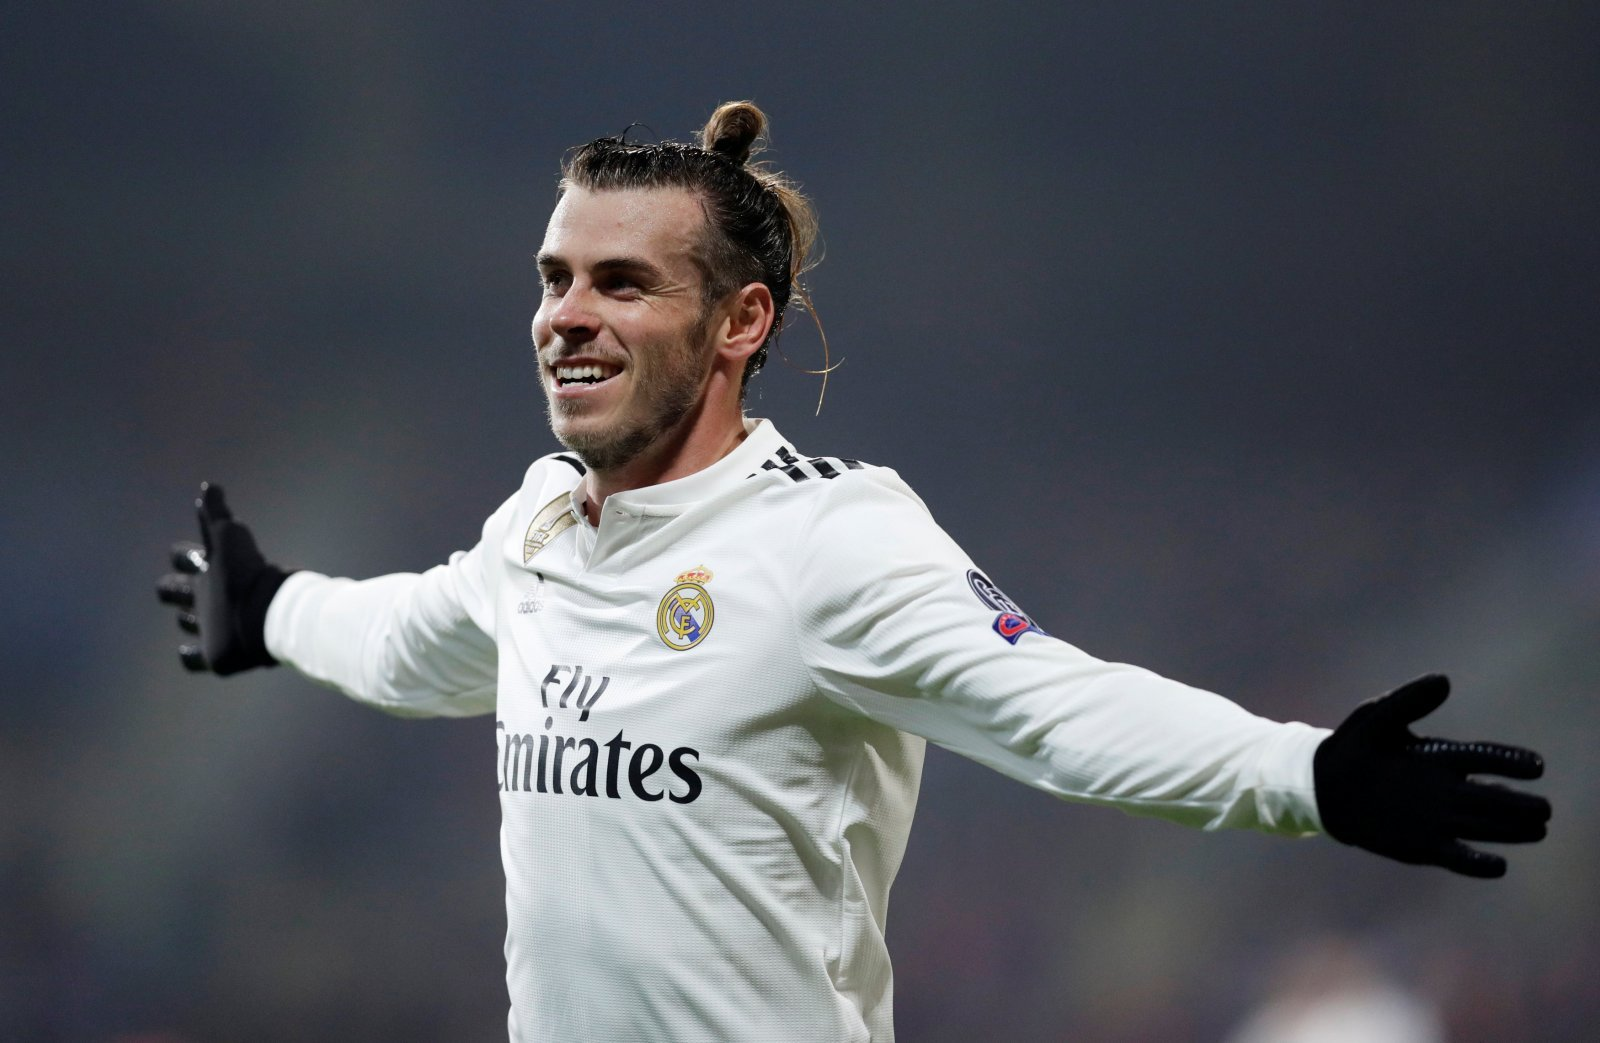 Manchester United: Old Trafford could be a destination for Real Madrid wantaway Gareth Bale